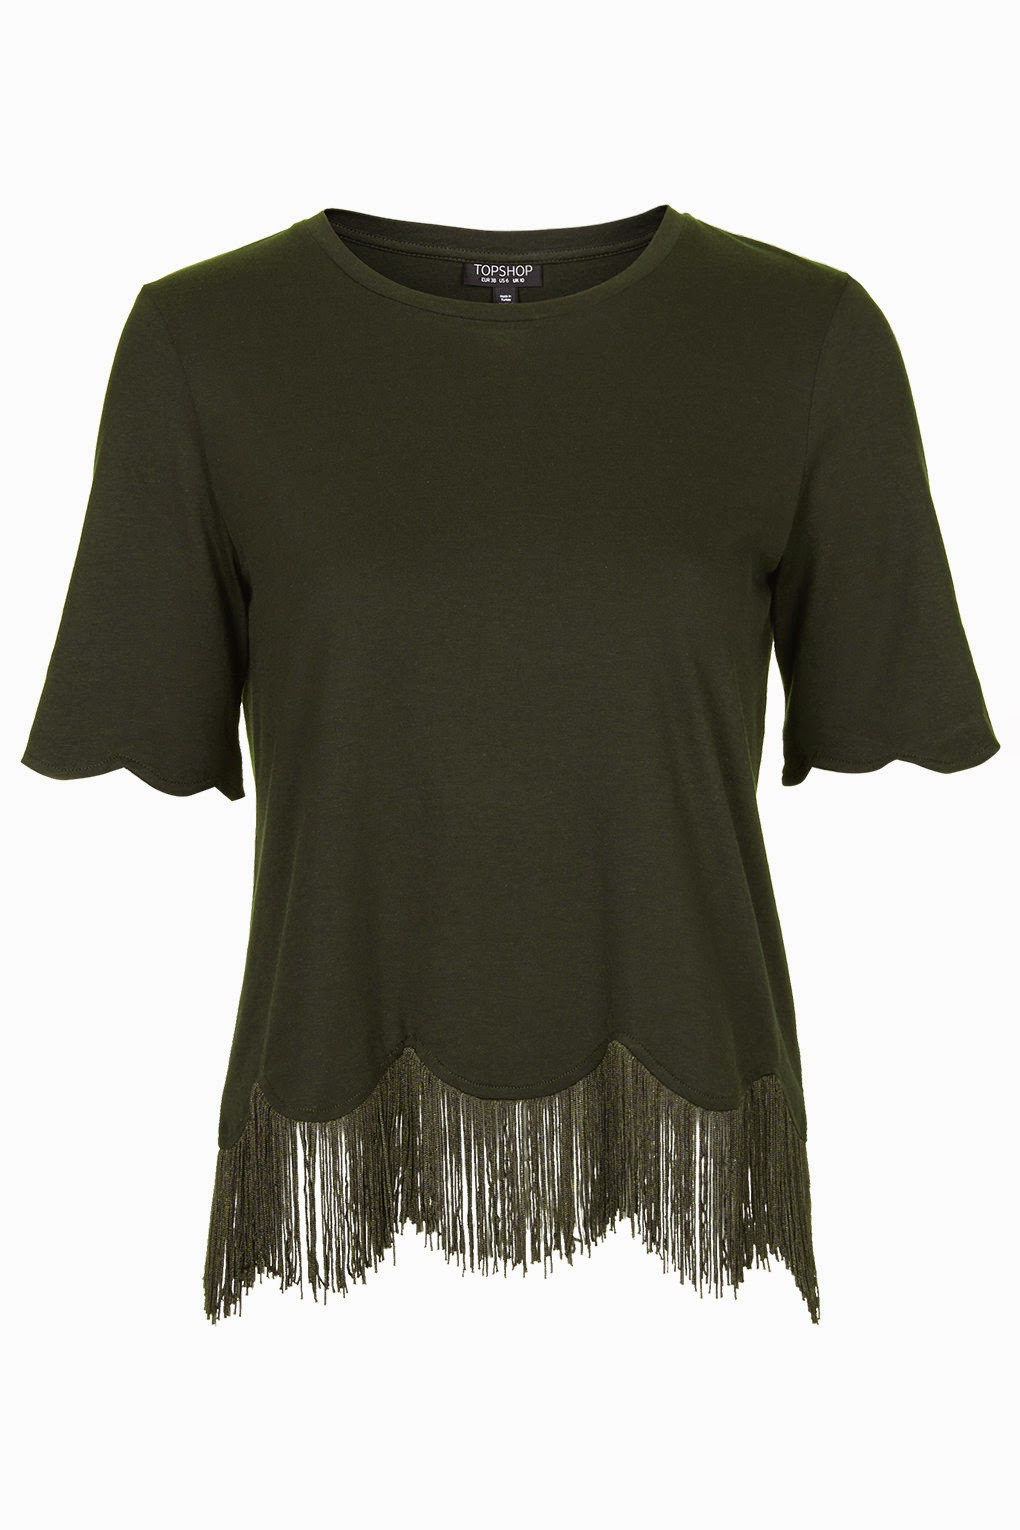 khaki scallop top